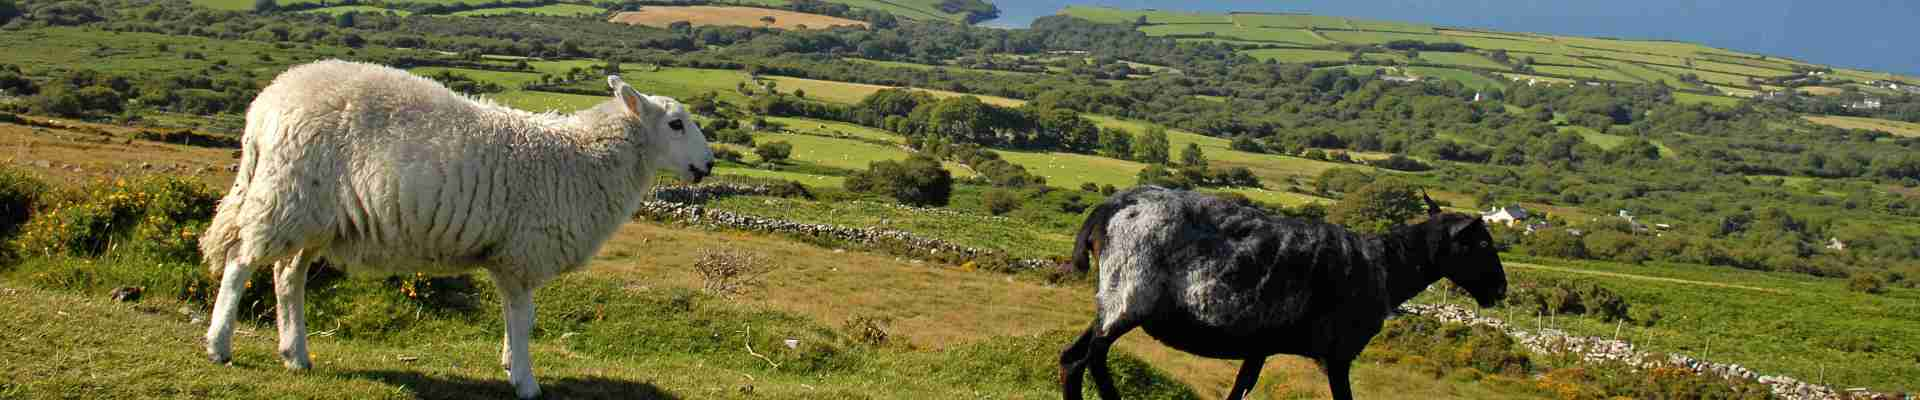 Llandovery Sheep Festival in September celebrates droving, sheep farming and the wool industry with